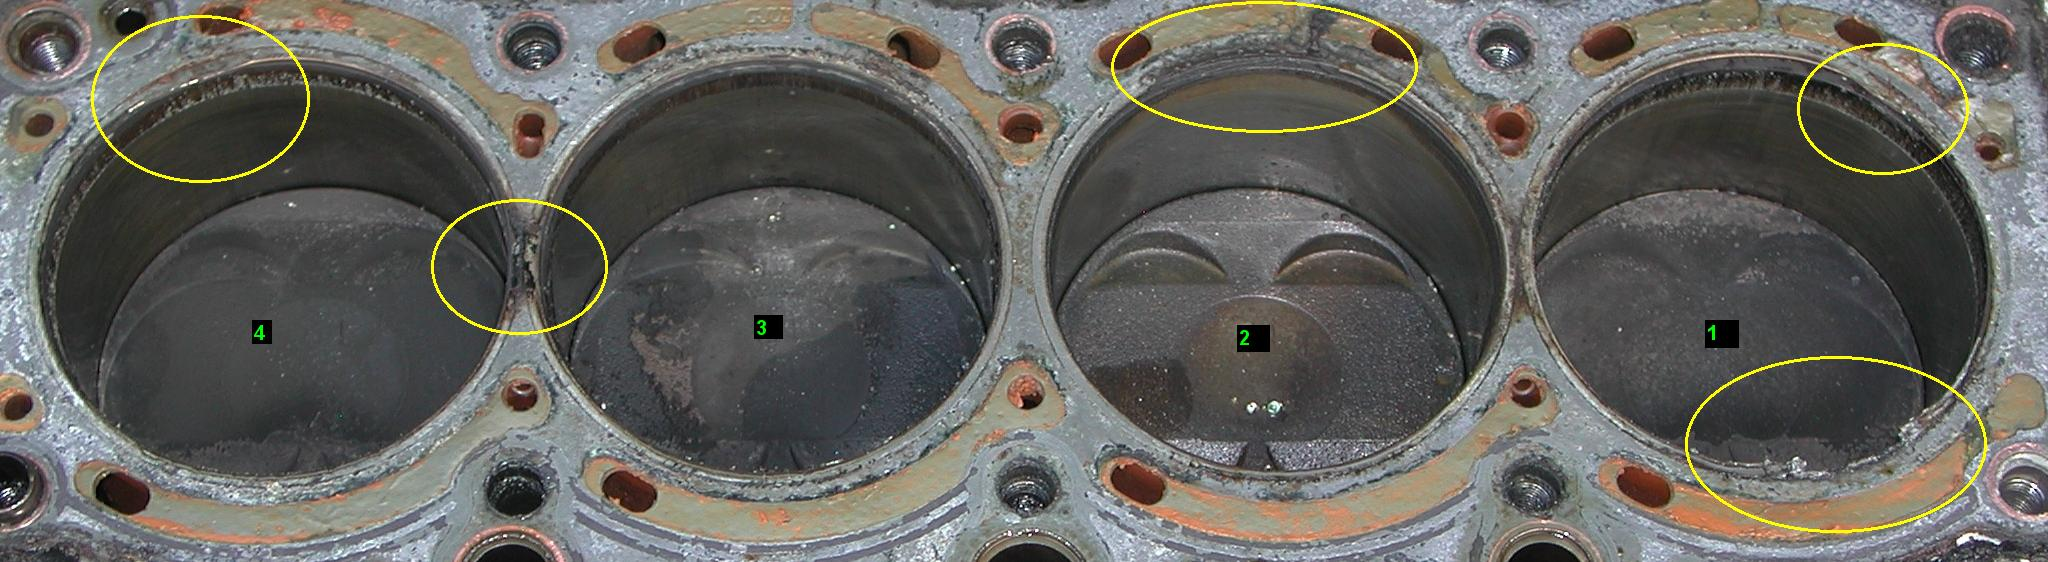 Signs Of A Blown Head Gasket >> AllTrac.net • View topic - Bad Head Gasket pics